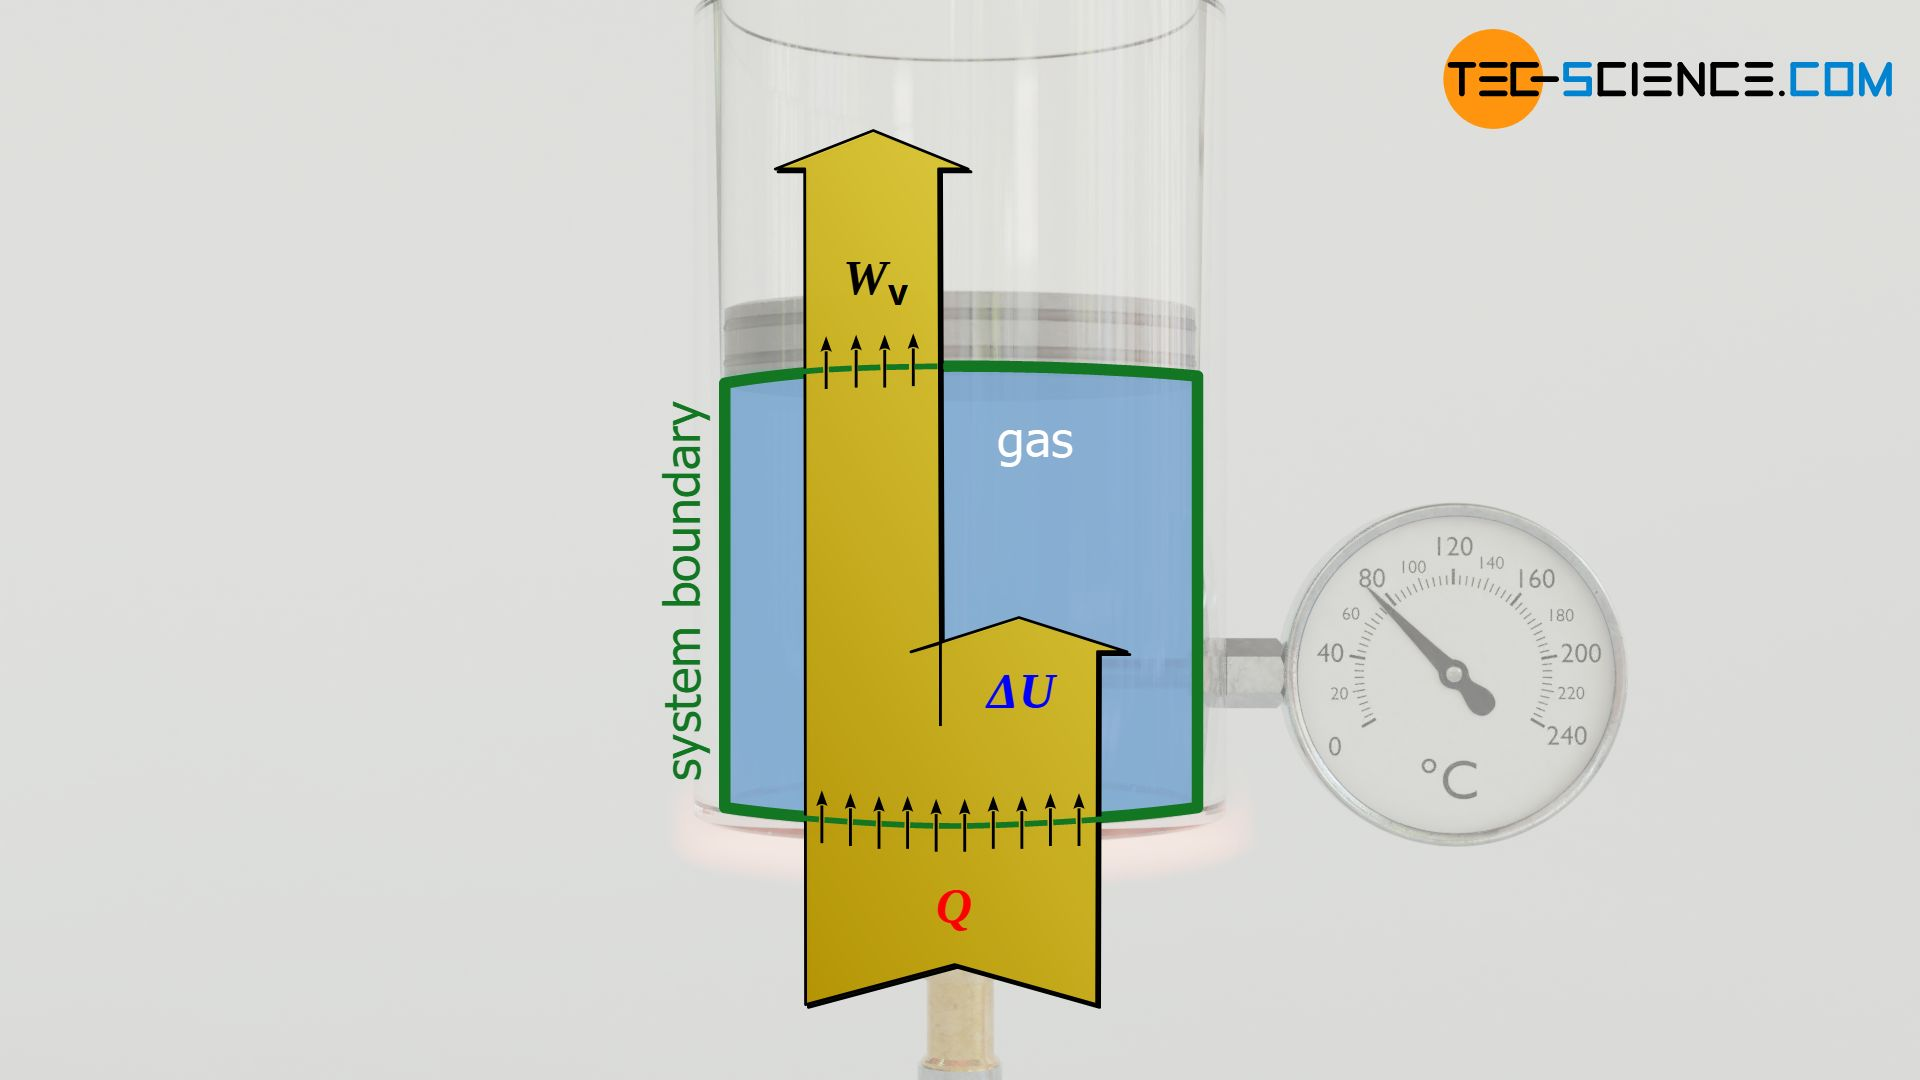 Energy flow diagram of an isobaric process (constant pressure)